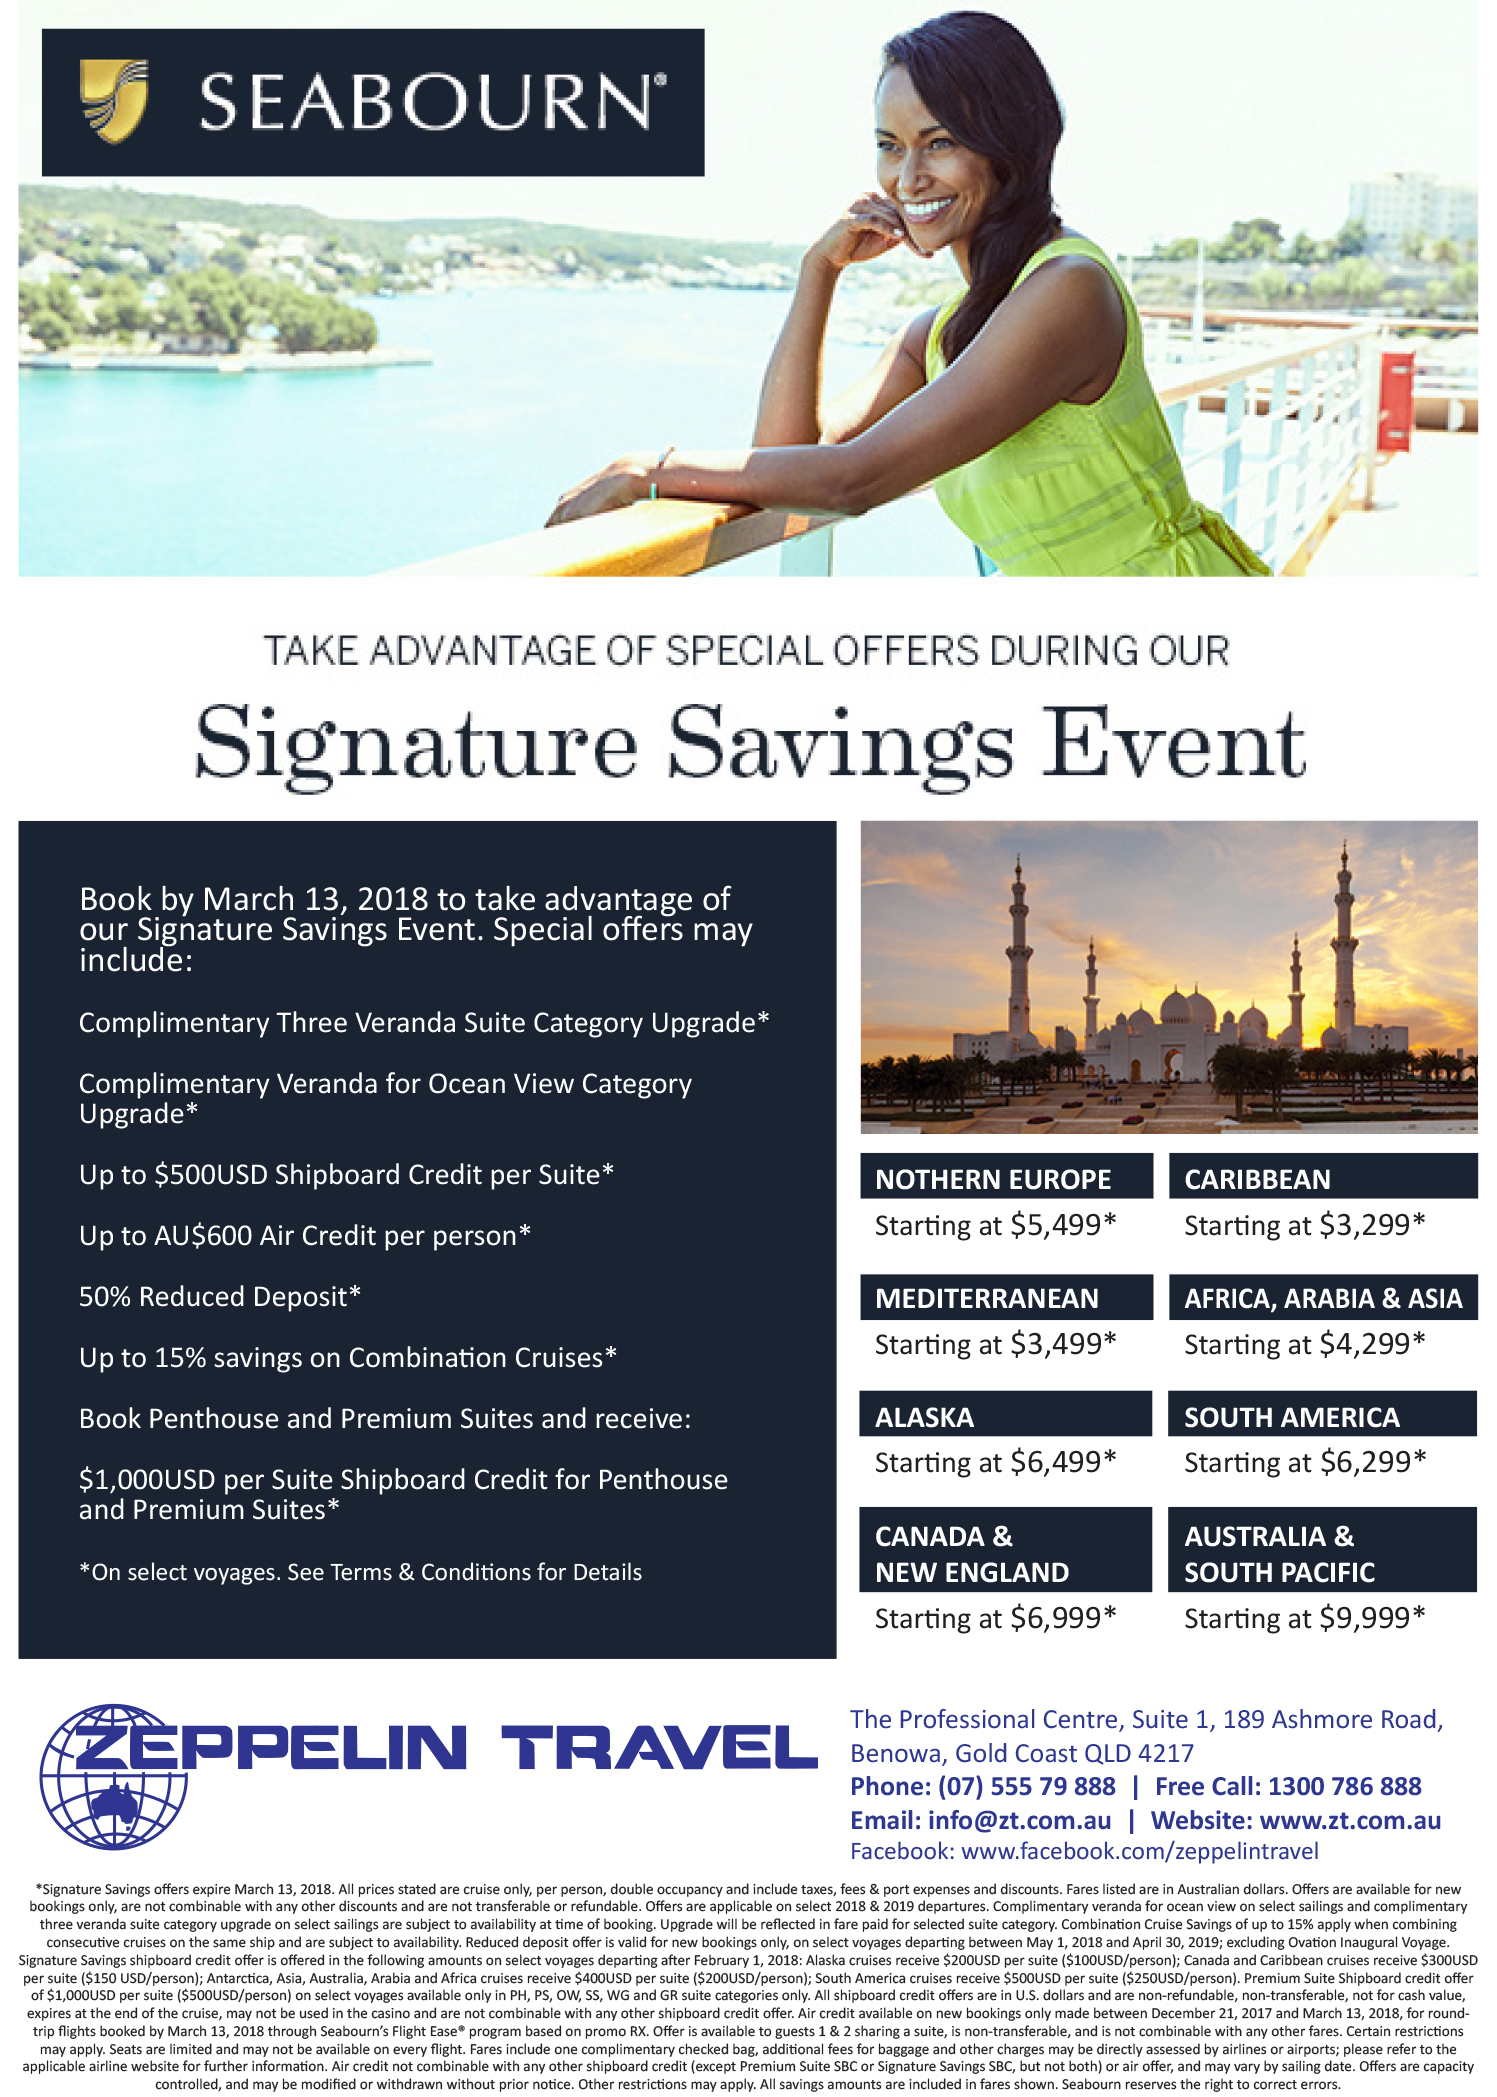 Seabourn_SignatureSavingsEvent_Jan18